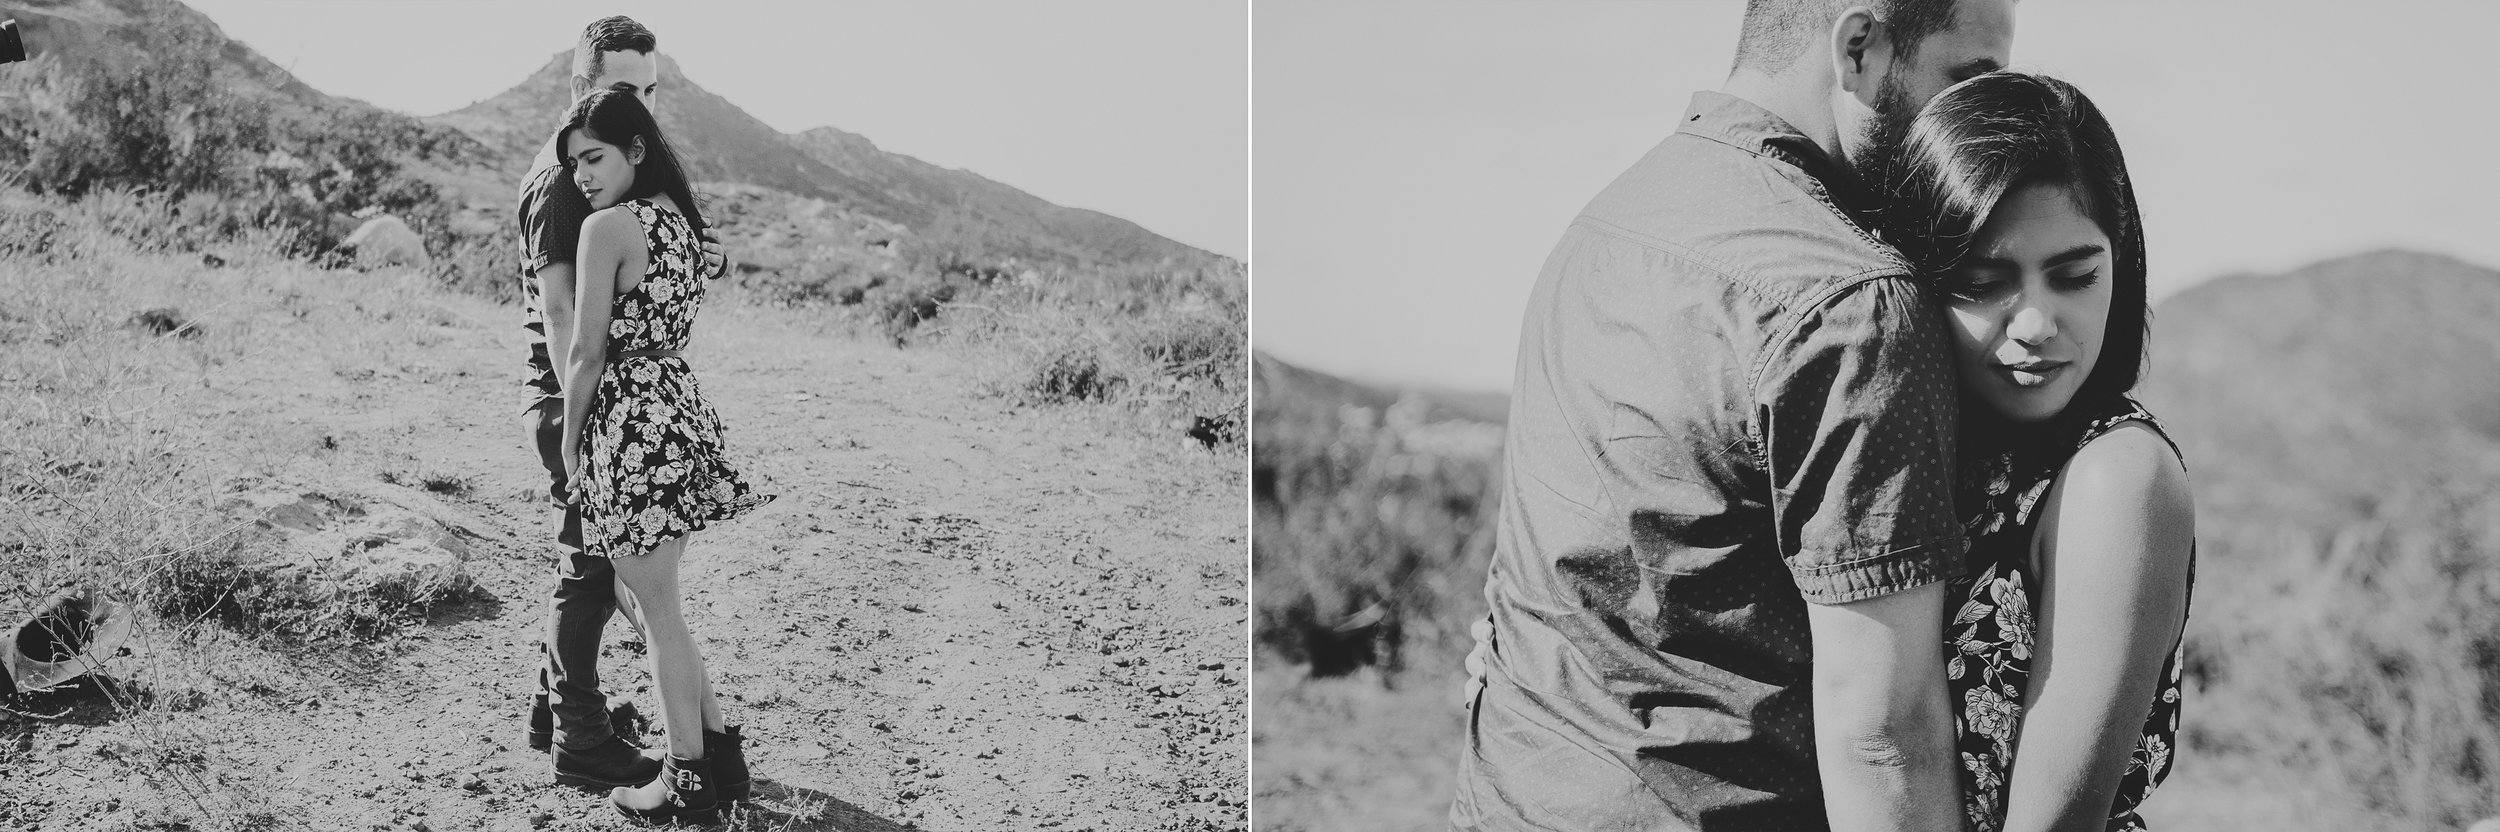 Los Ébano - Glamping Valle de Guadalupe Engagement - Janeth+Aníbal (83).jpg